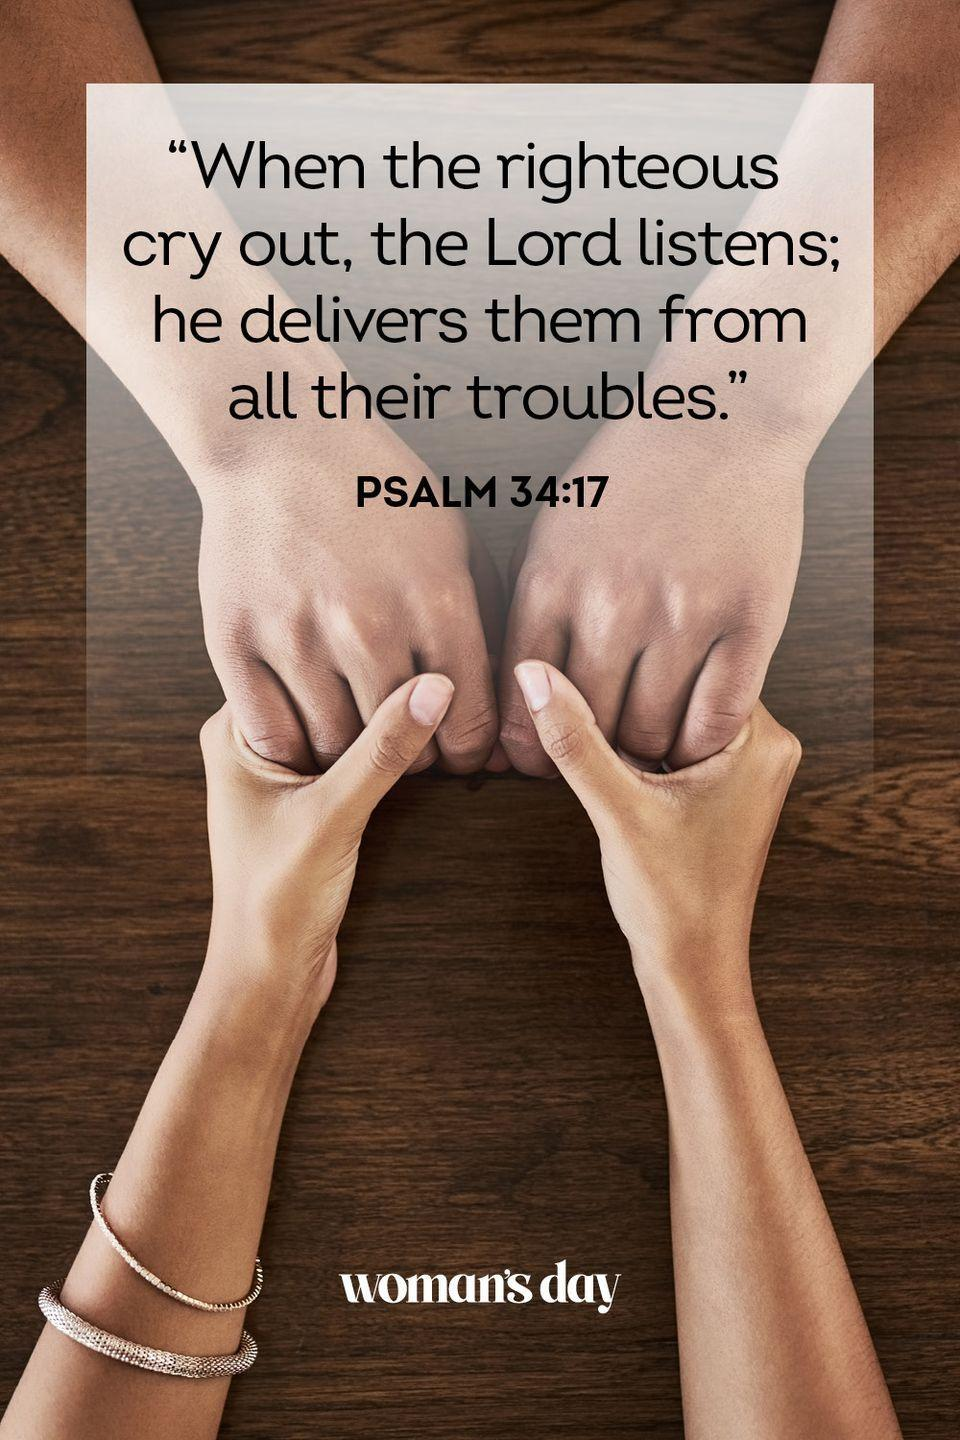 """<p>""""When the righteous cry out, the Lord listens; he delivers them from all their troubles."""" </p><p><strong>The Good News: </strong>You don't have to suffer alone or in silence. If you speak up to the Lord, He will hear you and help.<br></p>"""